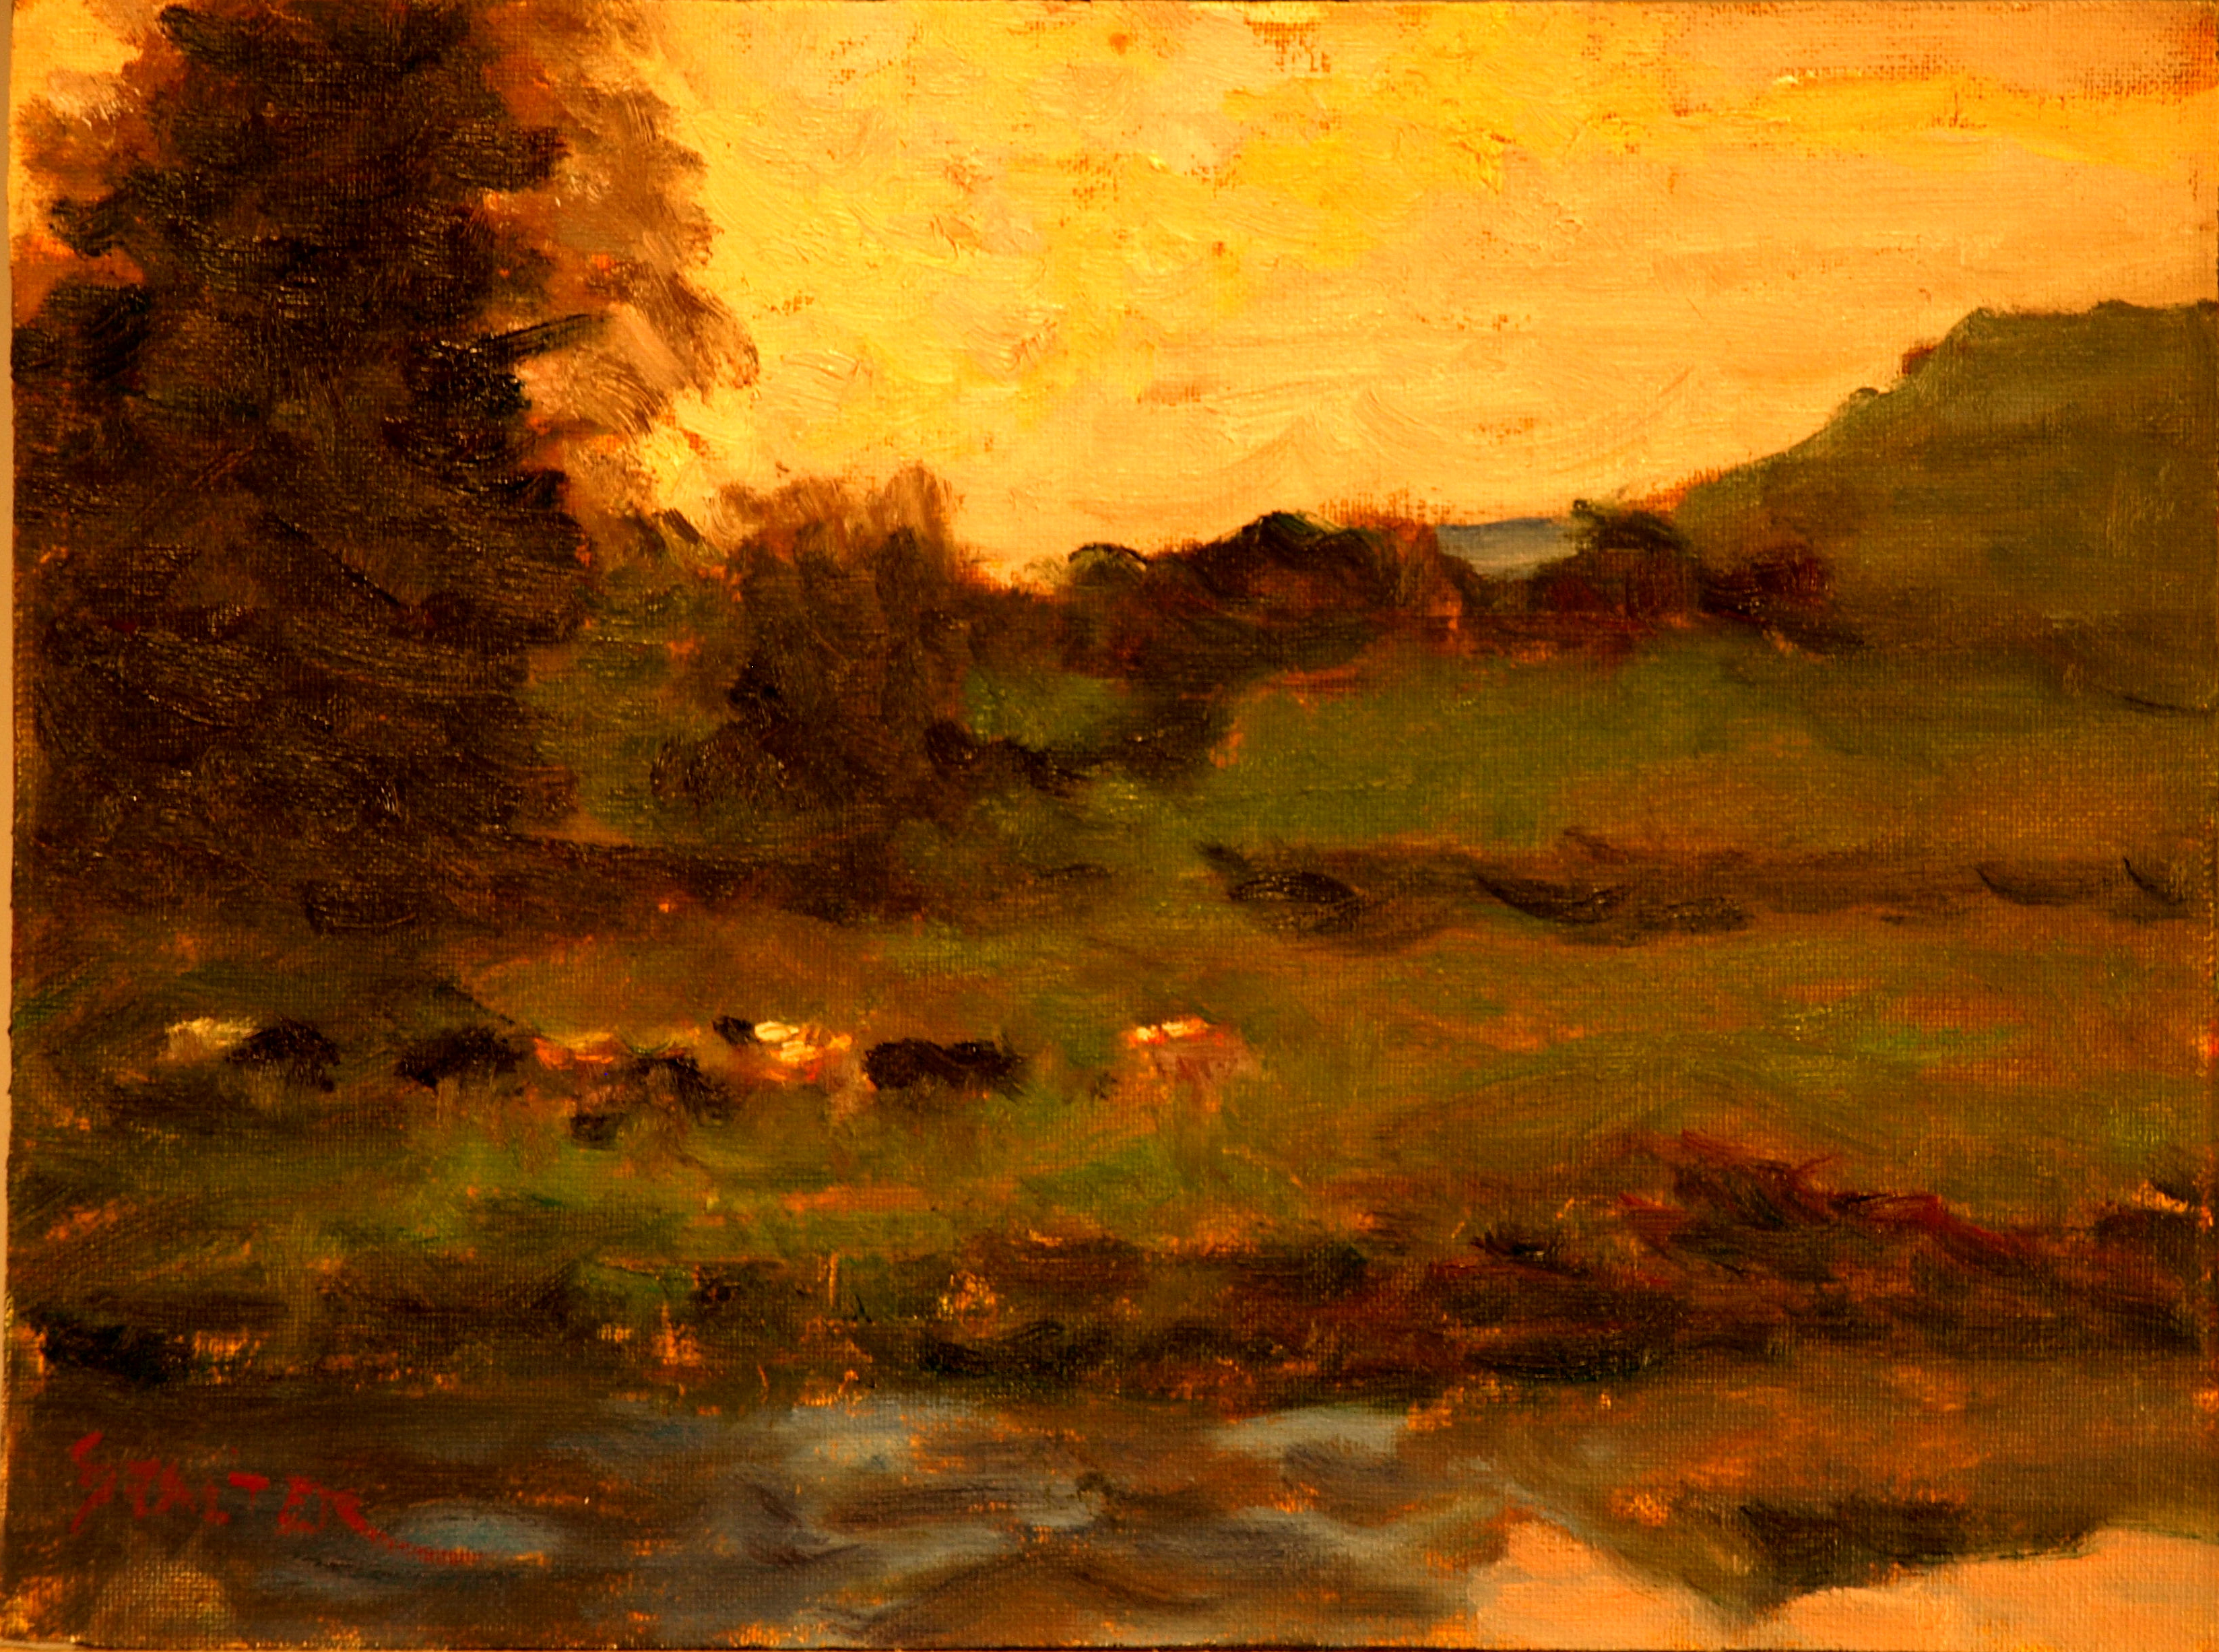 Evening - Summer Pasture, Oil on Canvas on Panel, 9 x 12 Inches, by Richard Stalter, $225